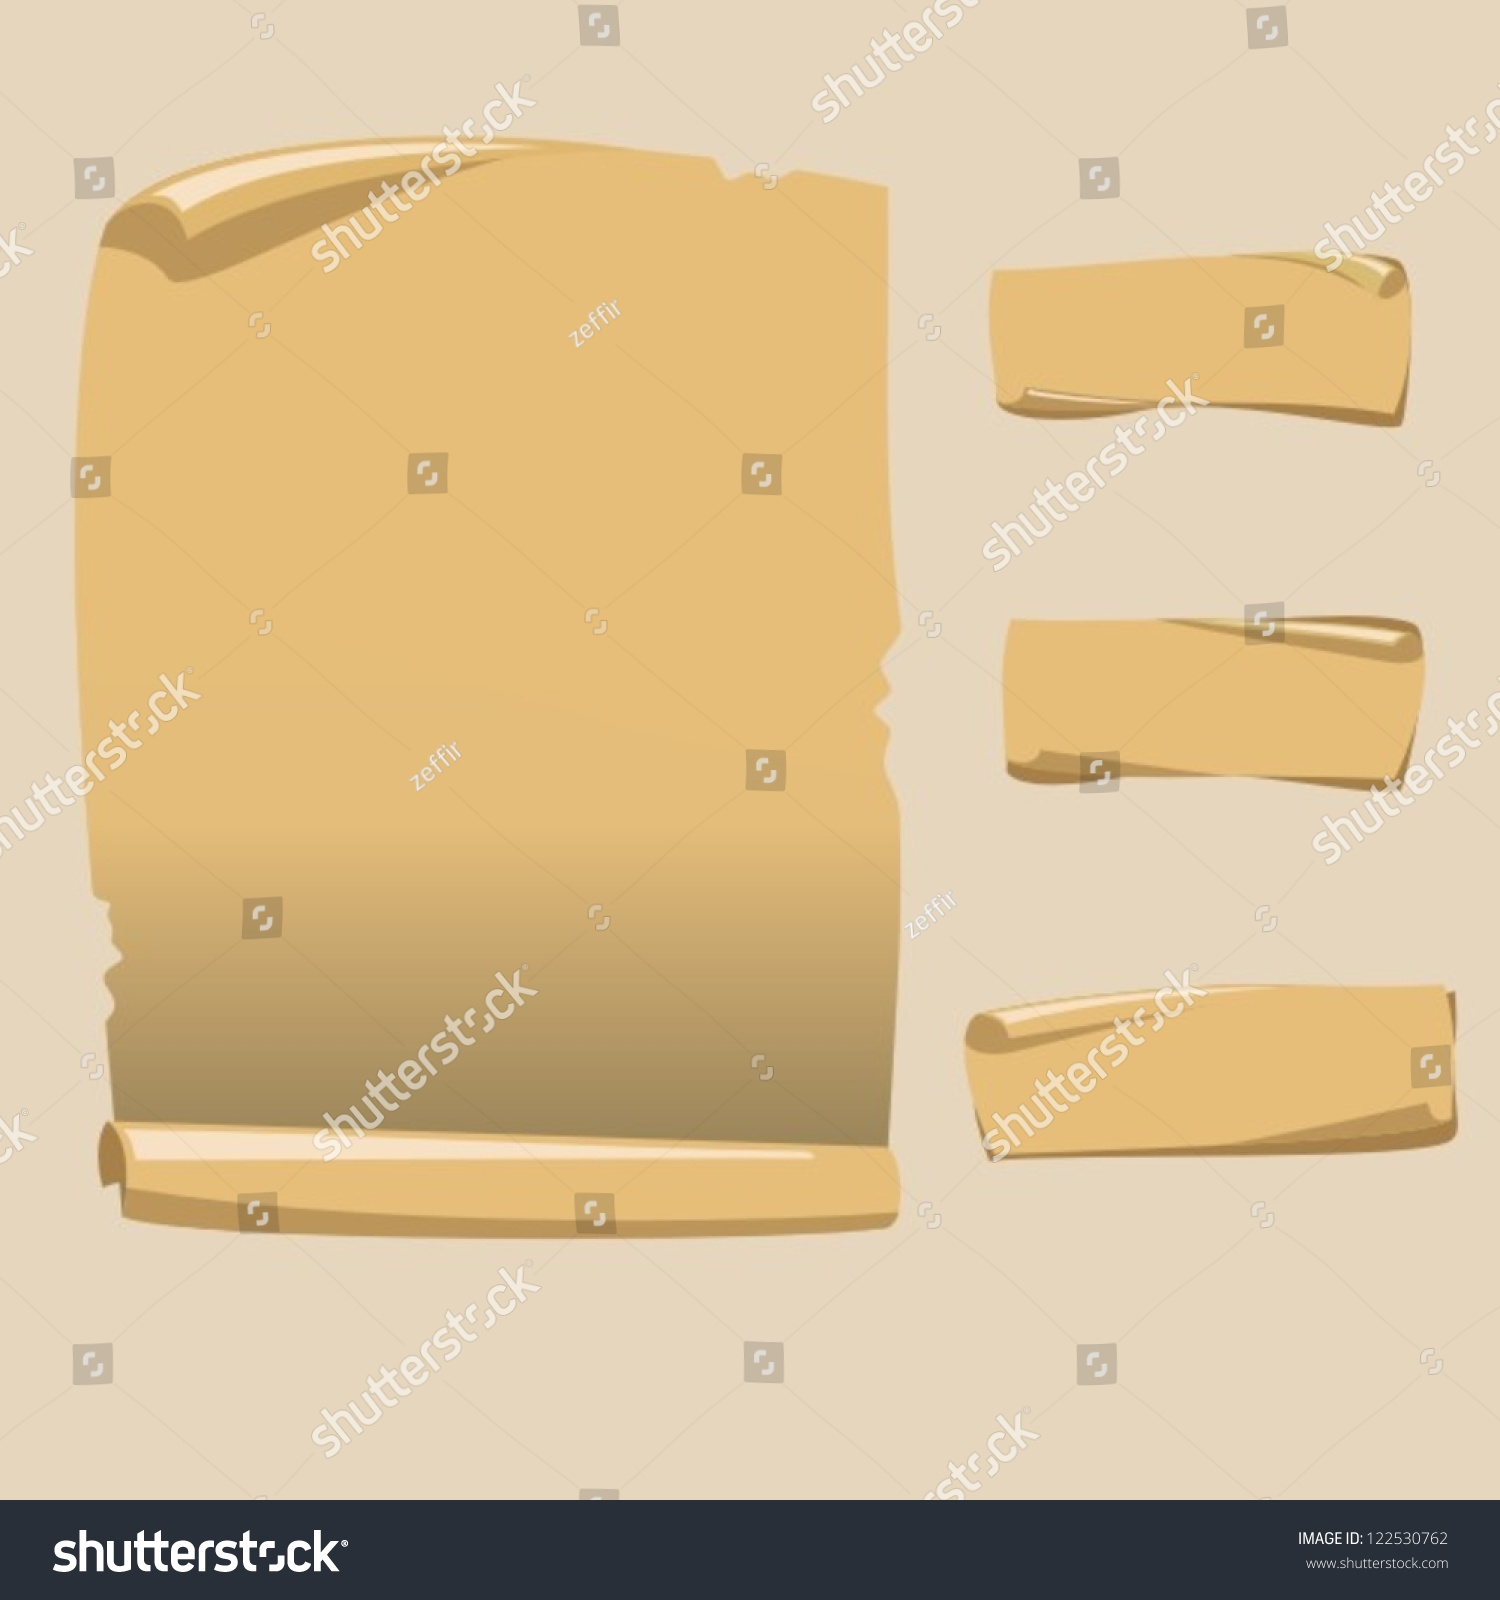 old blank scroll paper on white stock vector 122530762 - shutterstock, Powerpoint templates